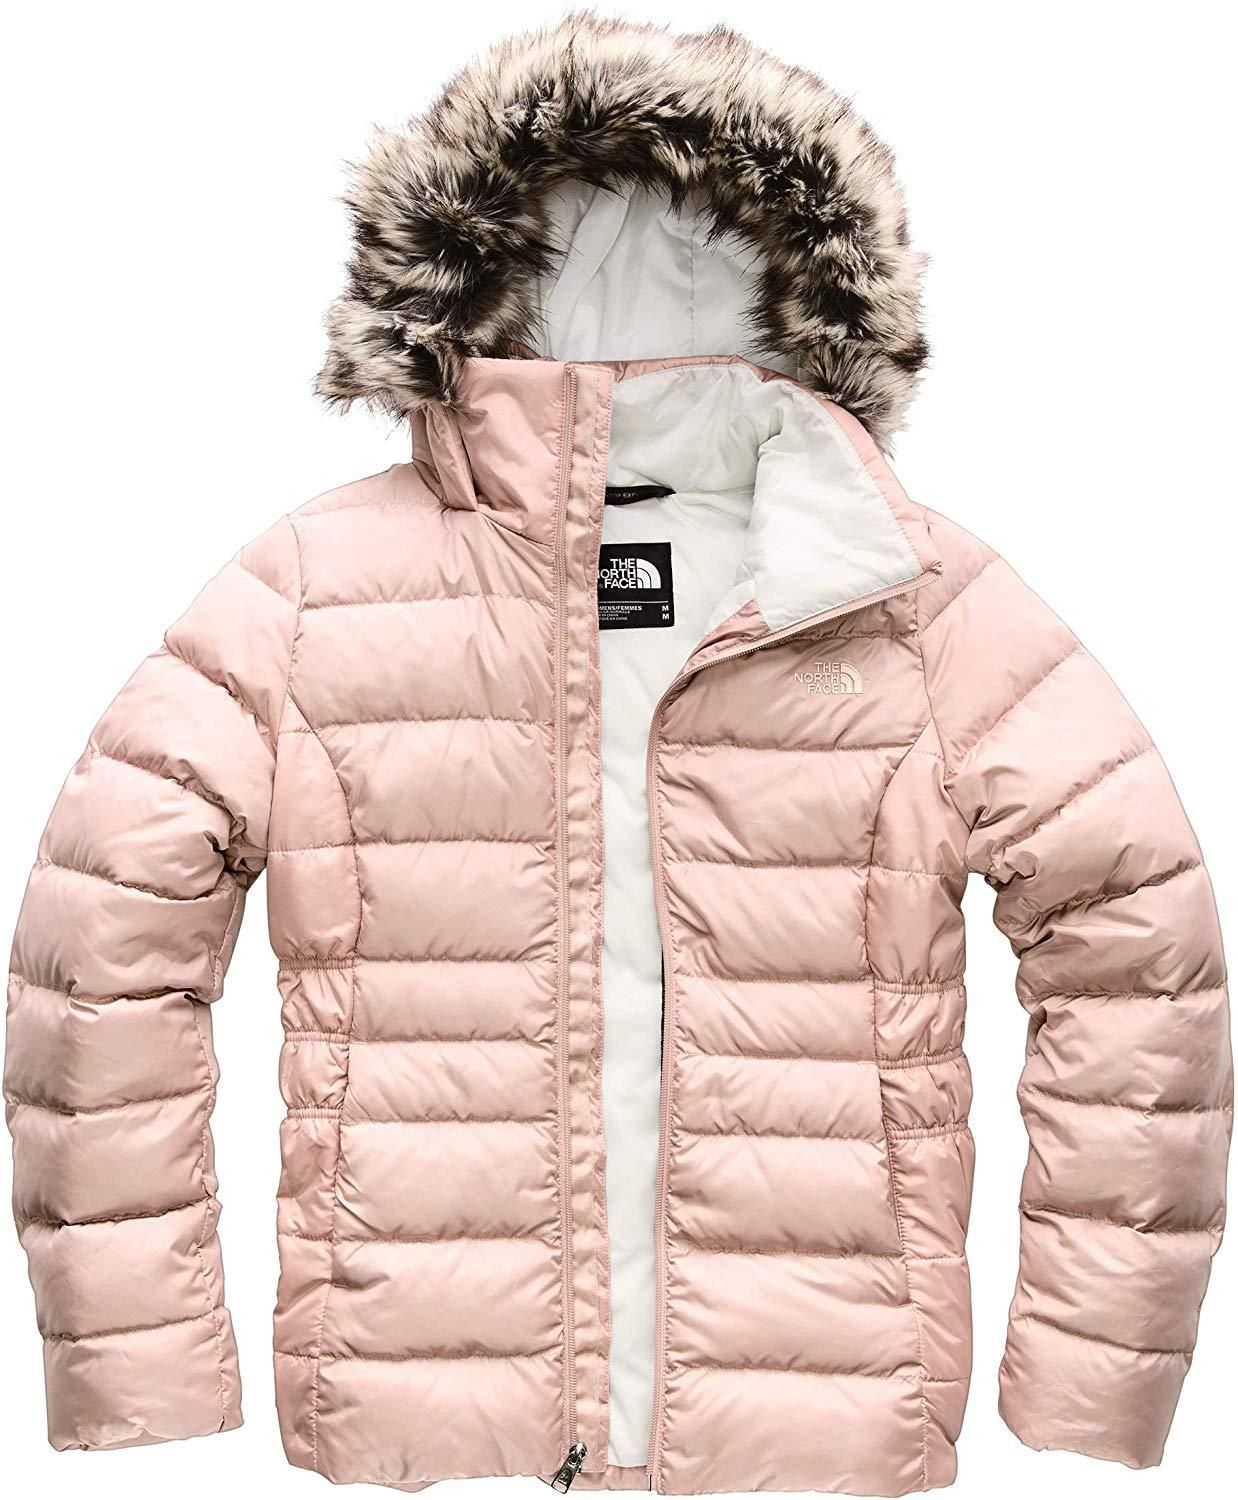 Pin By Priscilla Trejo On A 0 0 0 1 1 111 2 2222 333 North Face Women Jackets For Women North Face Jacket [ 1500 x 1238 Pixel ]